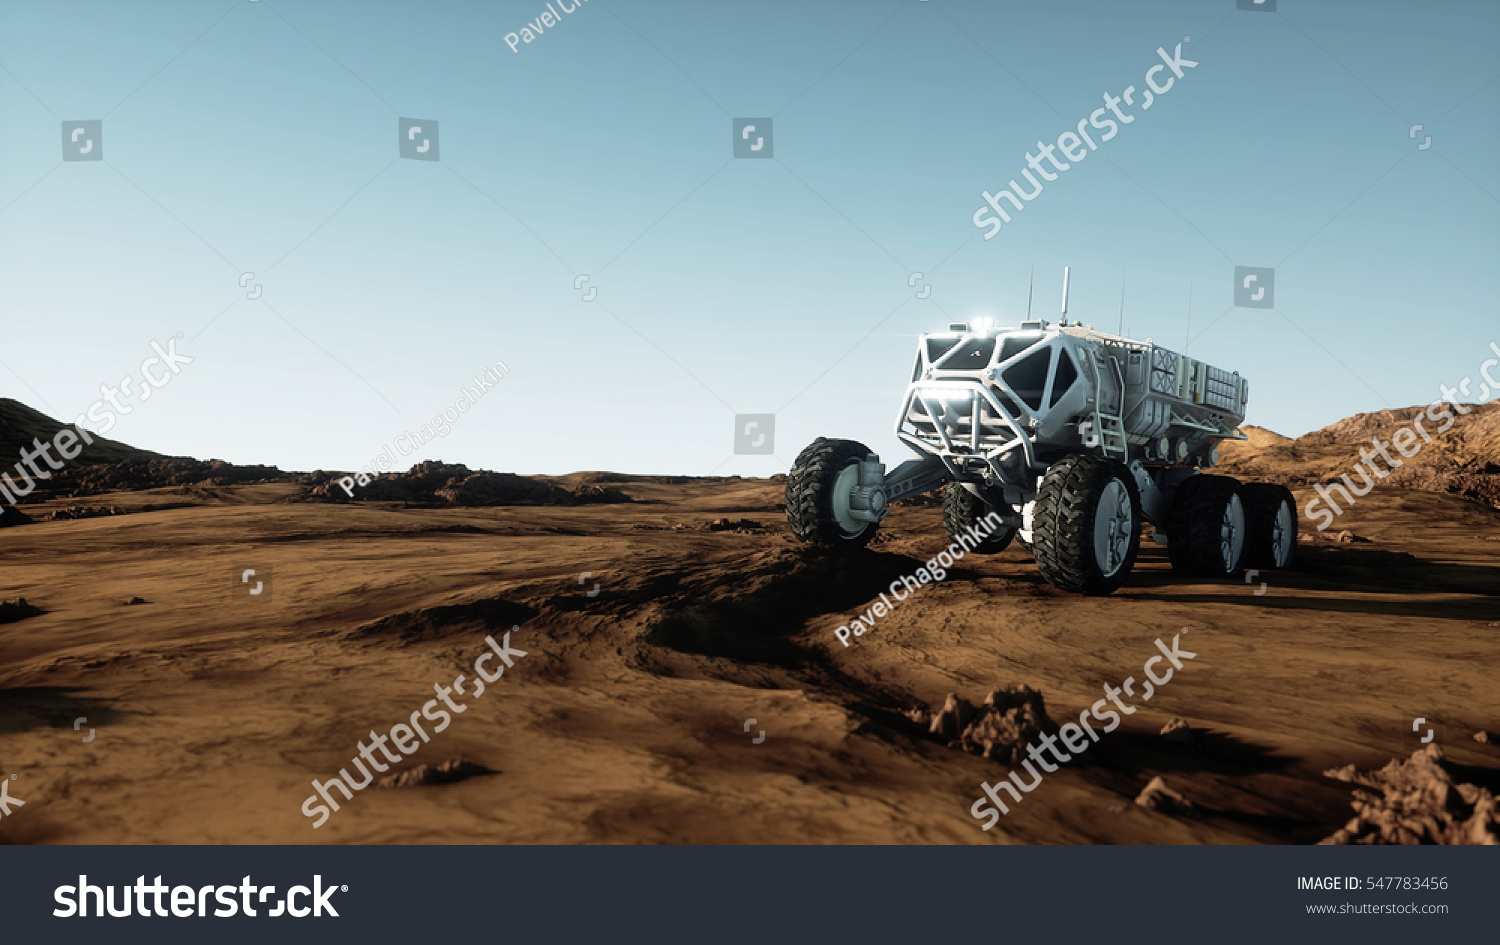 mars rovers expiditon - photo #33